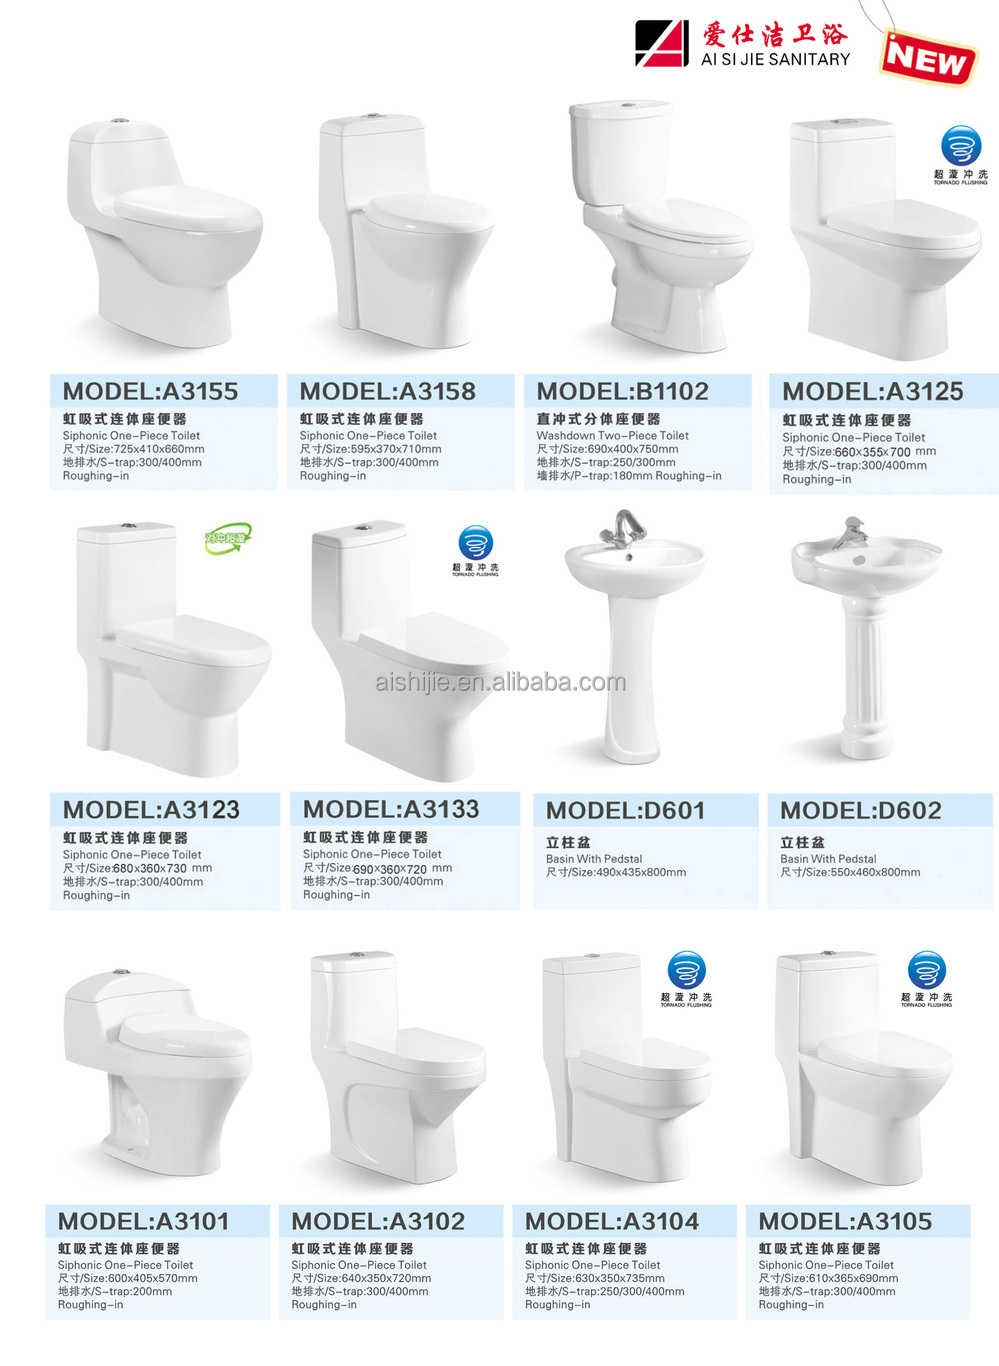 Cera bathroom fittings price list - A3116 New Products 2015 Innovative Sanitary Ware From China Mobile Toilet